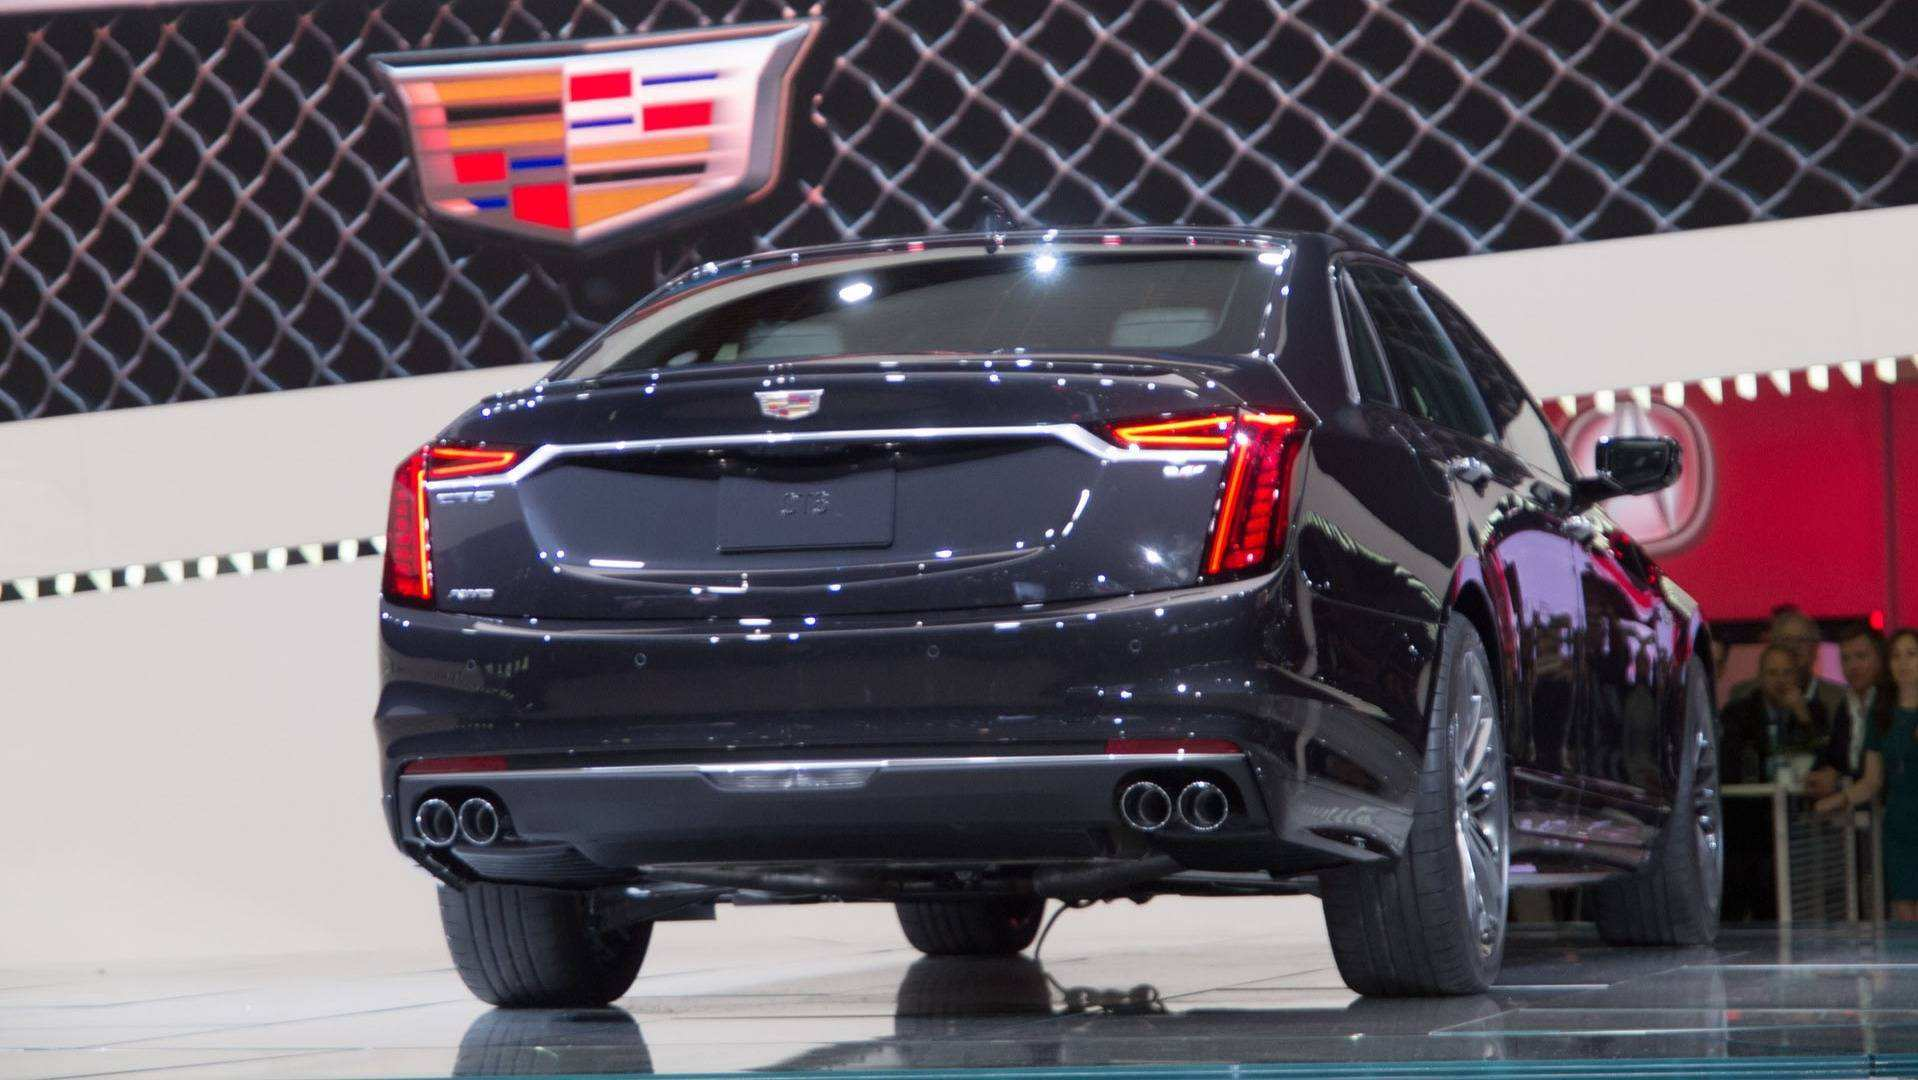 97 All New 2019 Cadillac Twin Turbo V8 Pricing